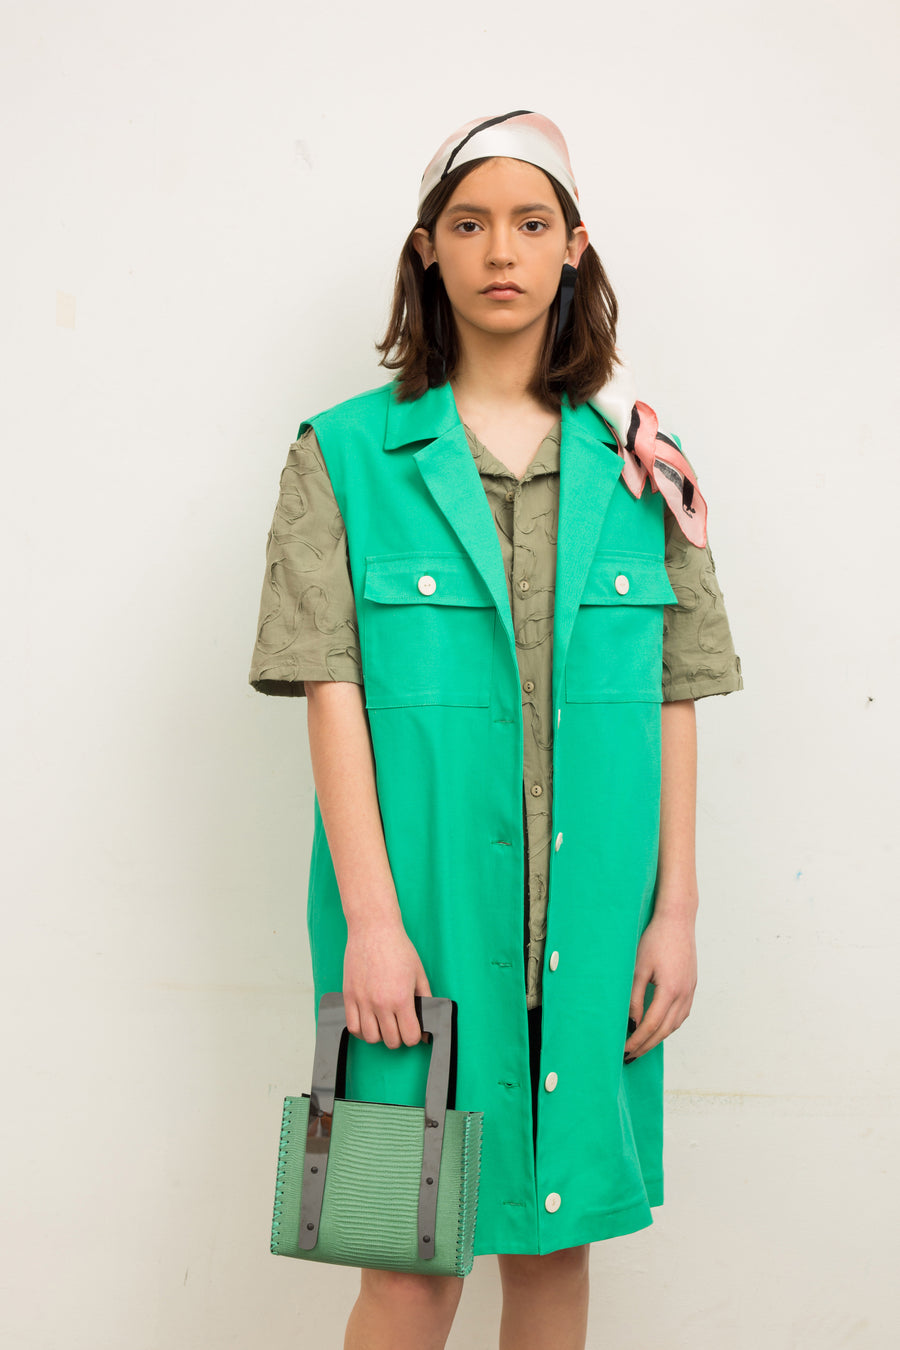 Green Tailored Vest - OFIR IVGI